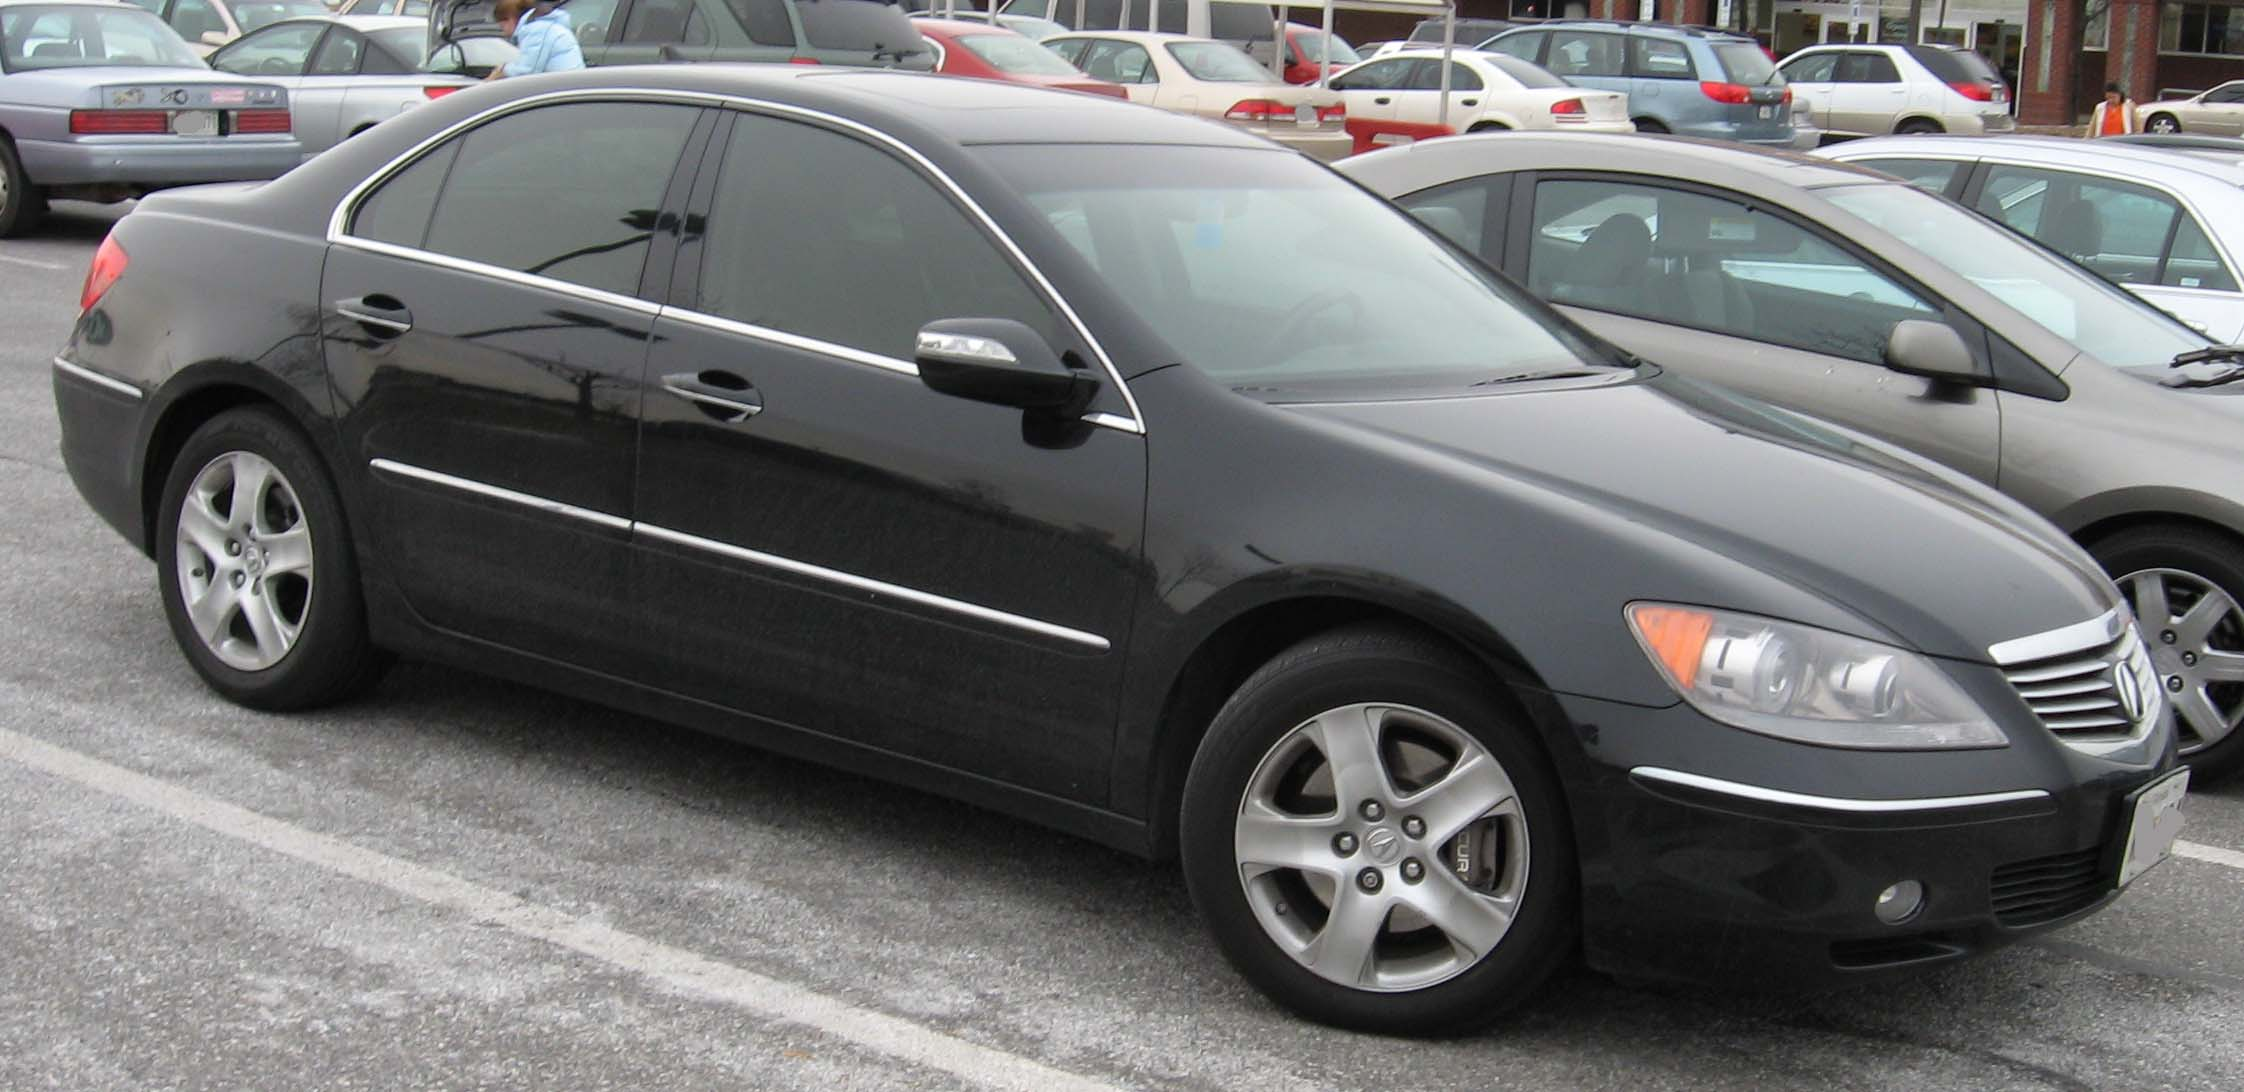 File:05-07 Acura RL 1.jpg - Wikimedia Commons